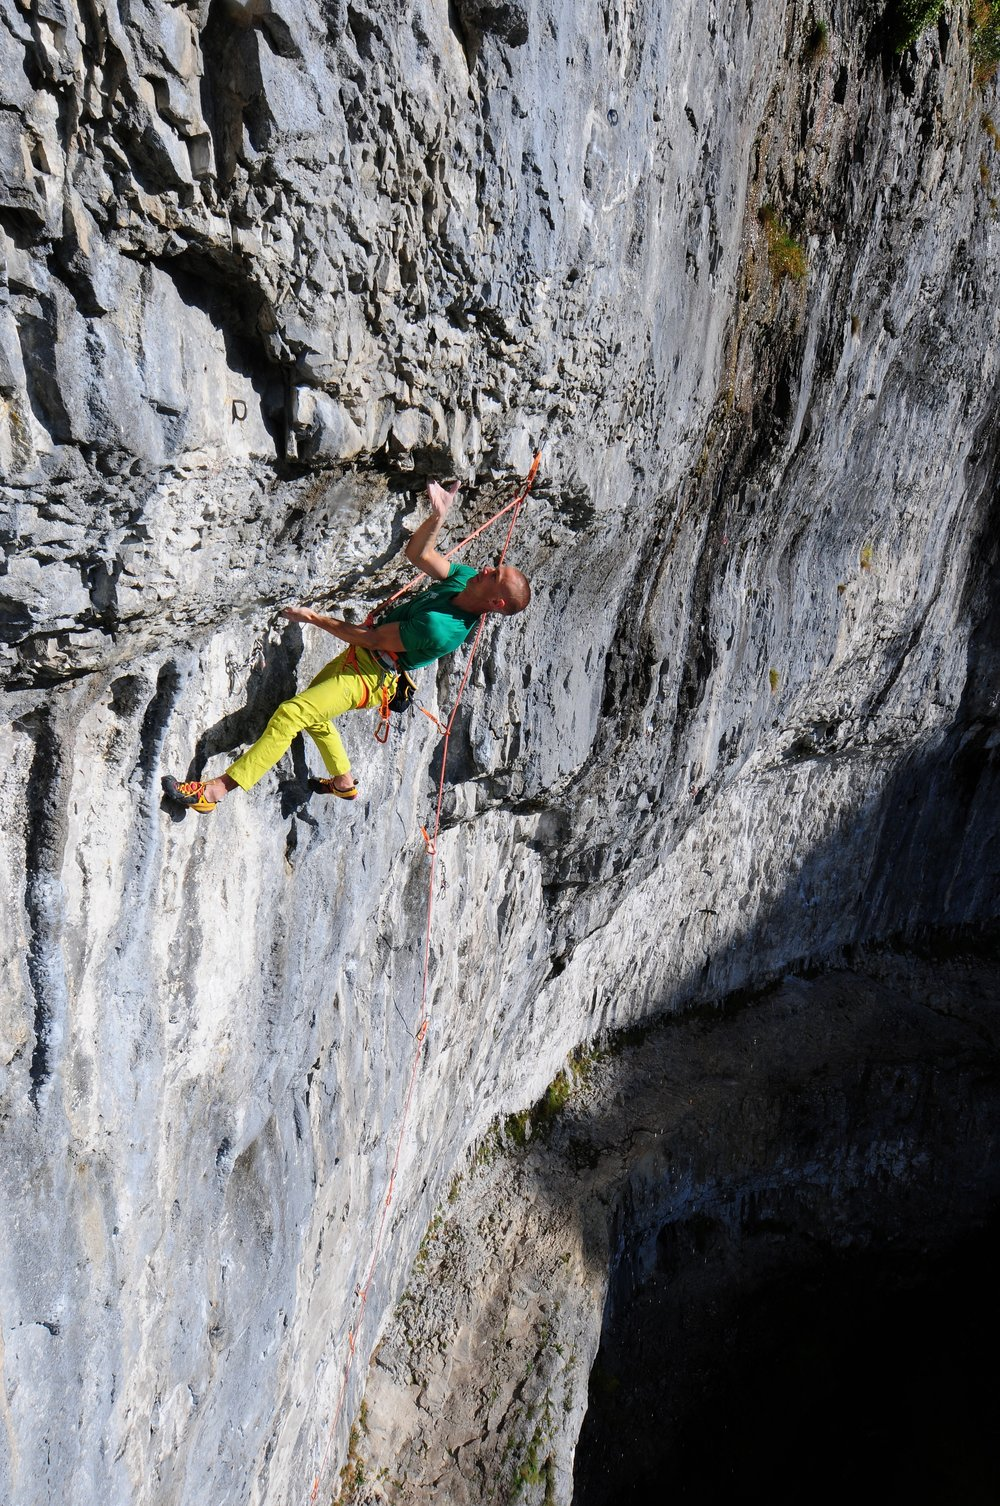 Entering the crux of Sabotage 8c+  Photo: Ian Parnell